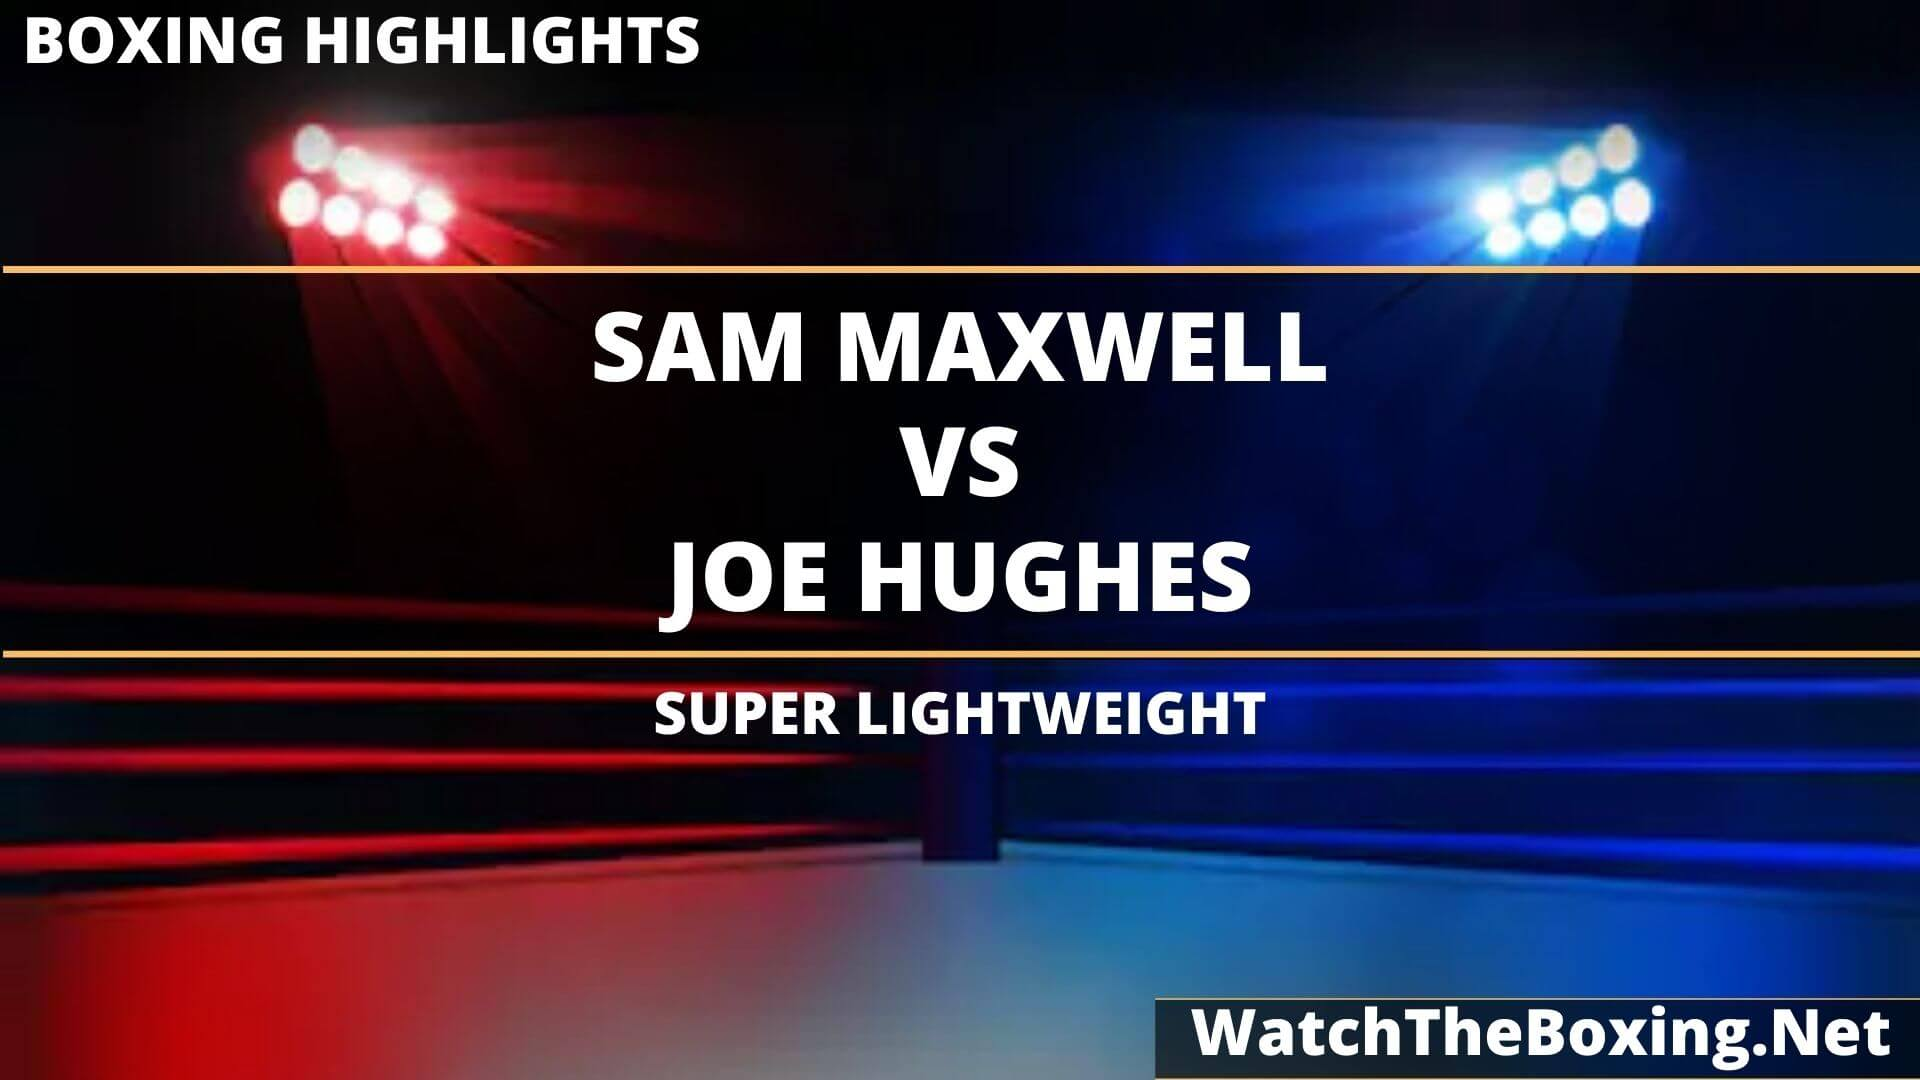 Sam Maxwell Vs Joe Hughes Highlights 2020